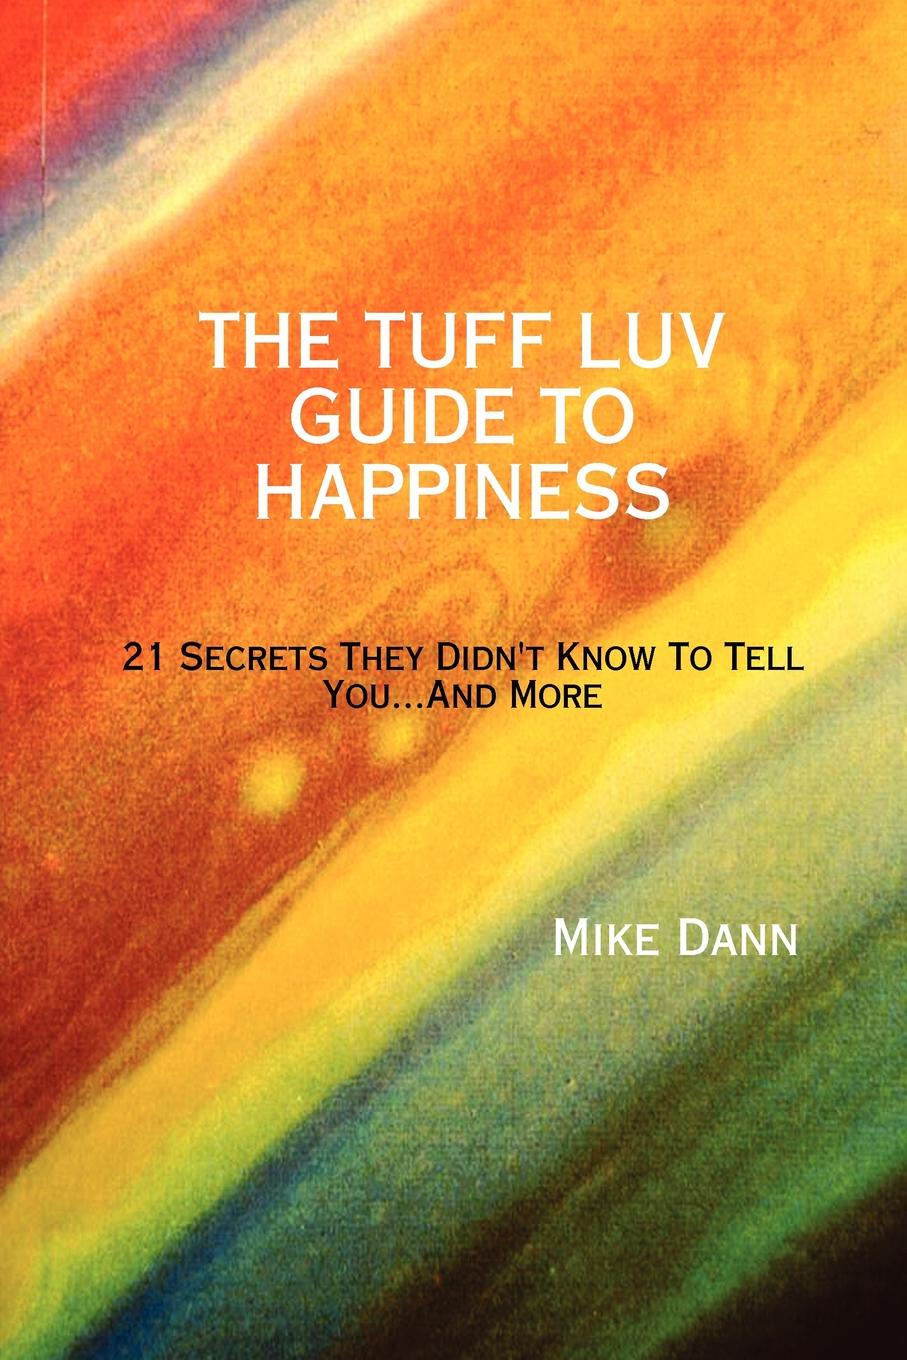 Mike Dann THE TUFF LUV GUIDE TO HAPPINESS mathew hartley one month to happiness